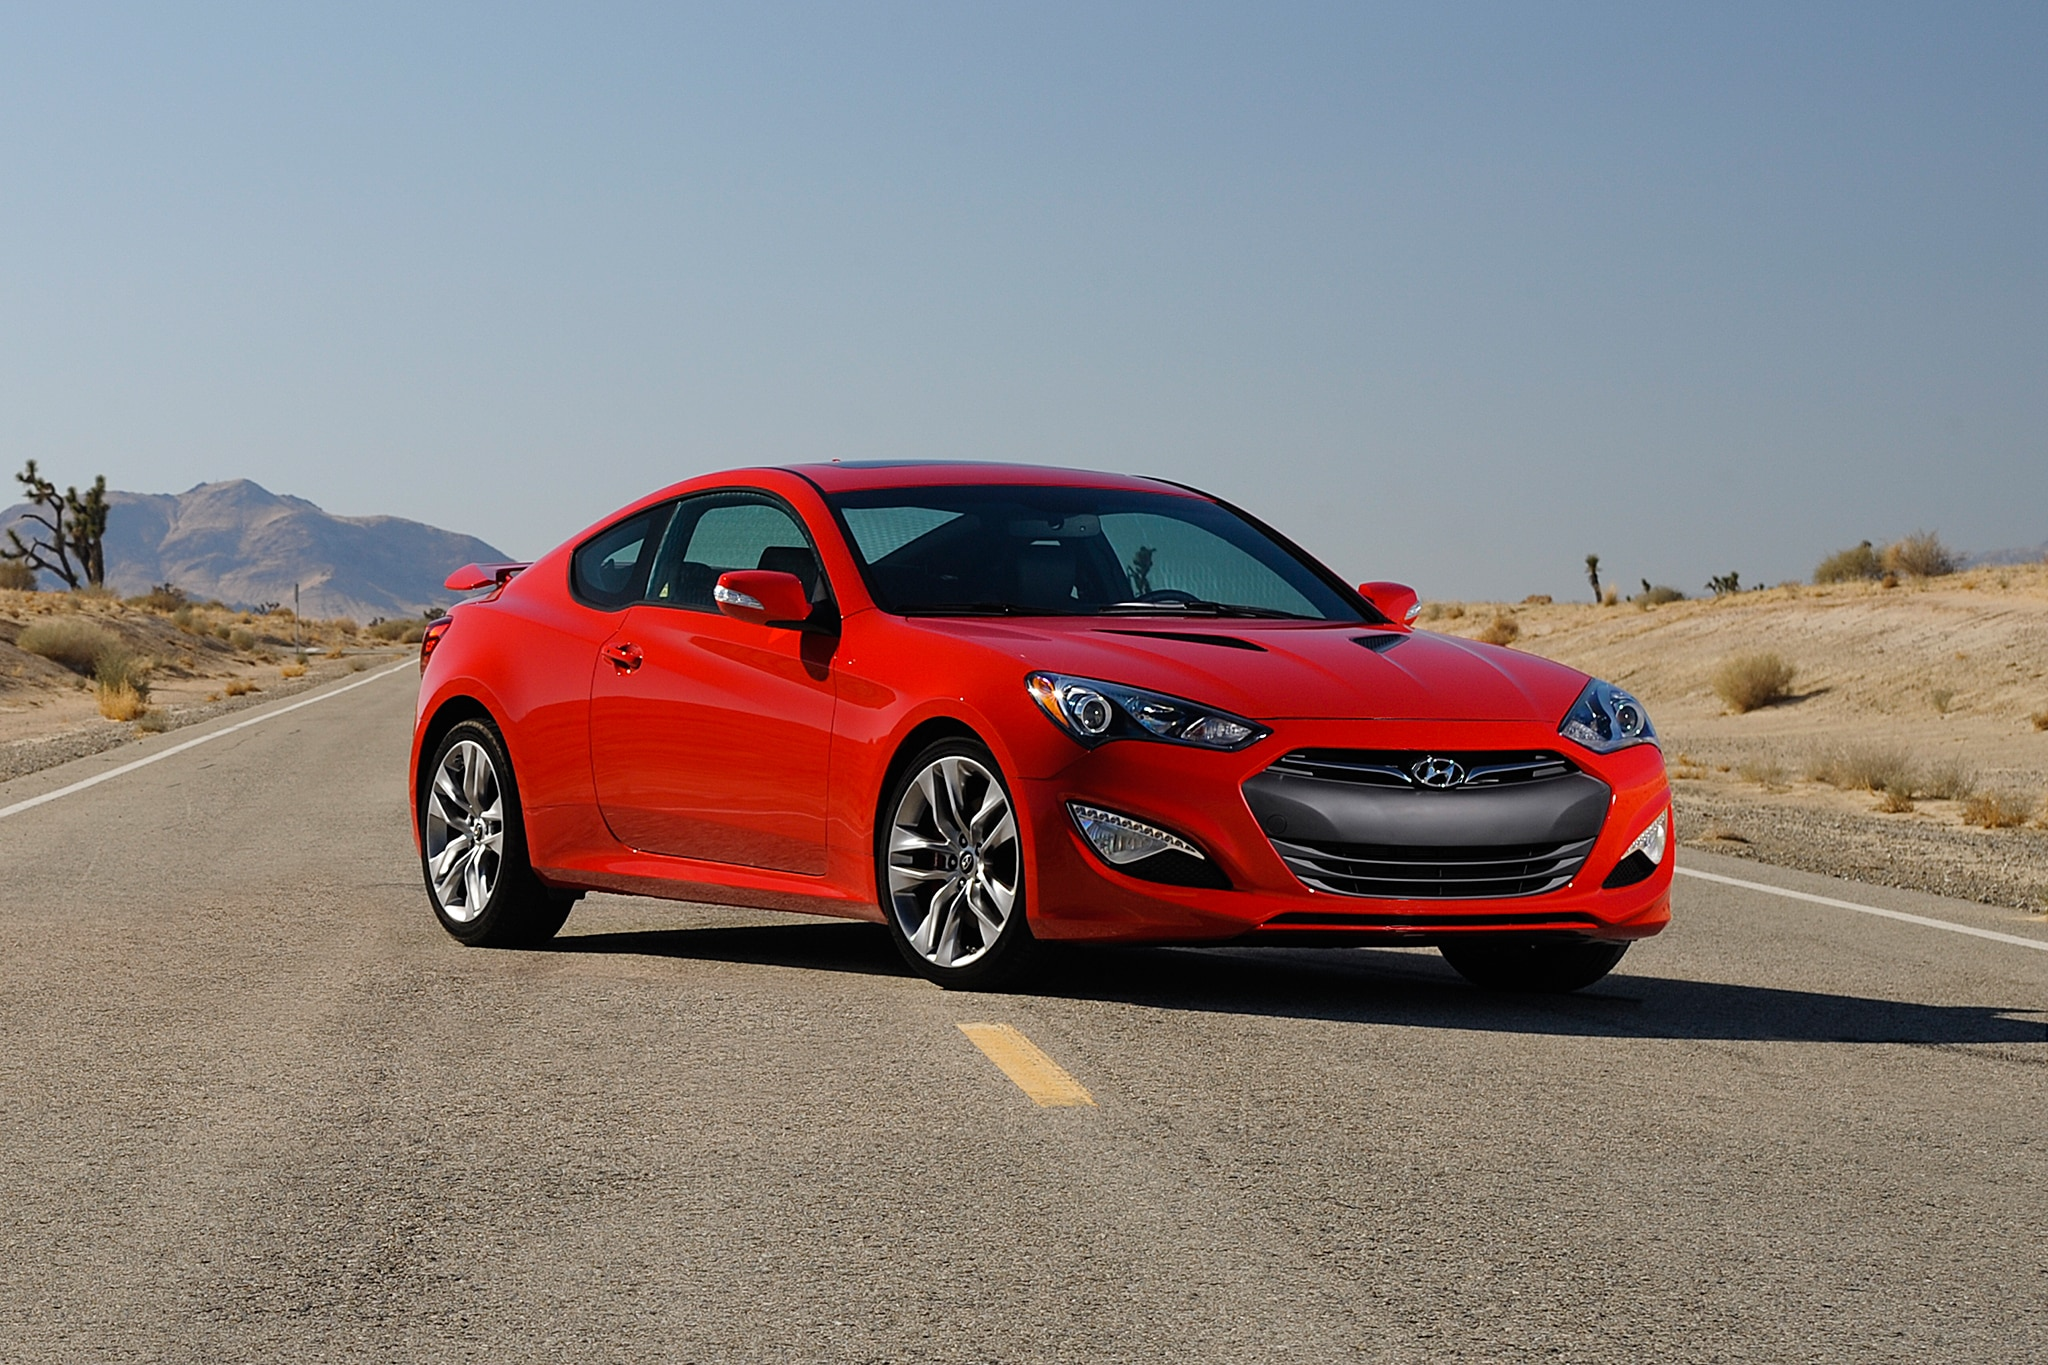 2013 Hyundai Genesis Coupe Three Quarters Passengers Side1